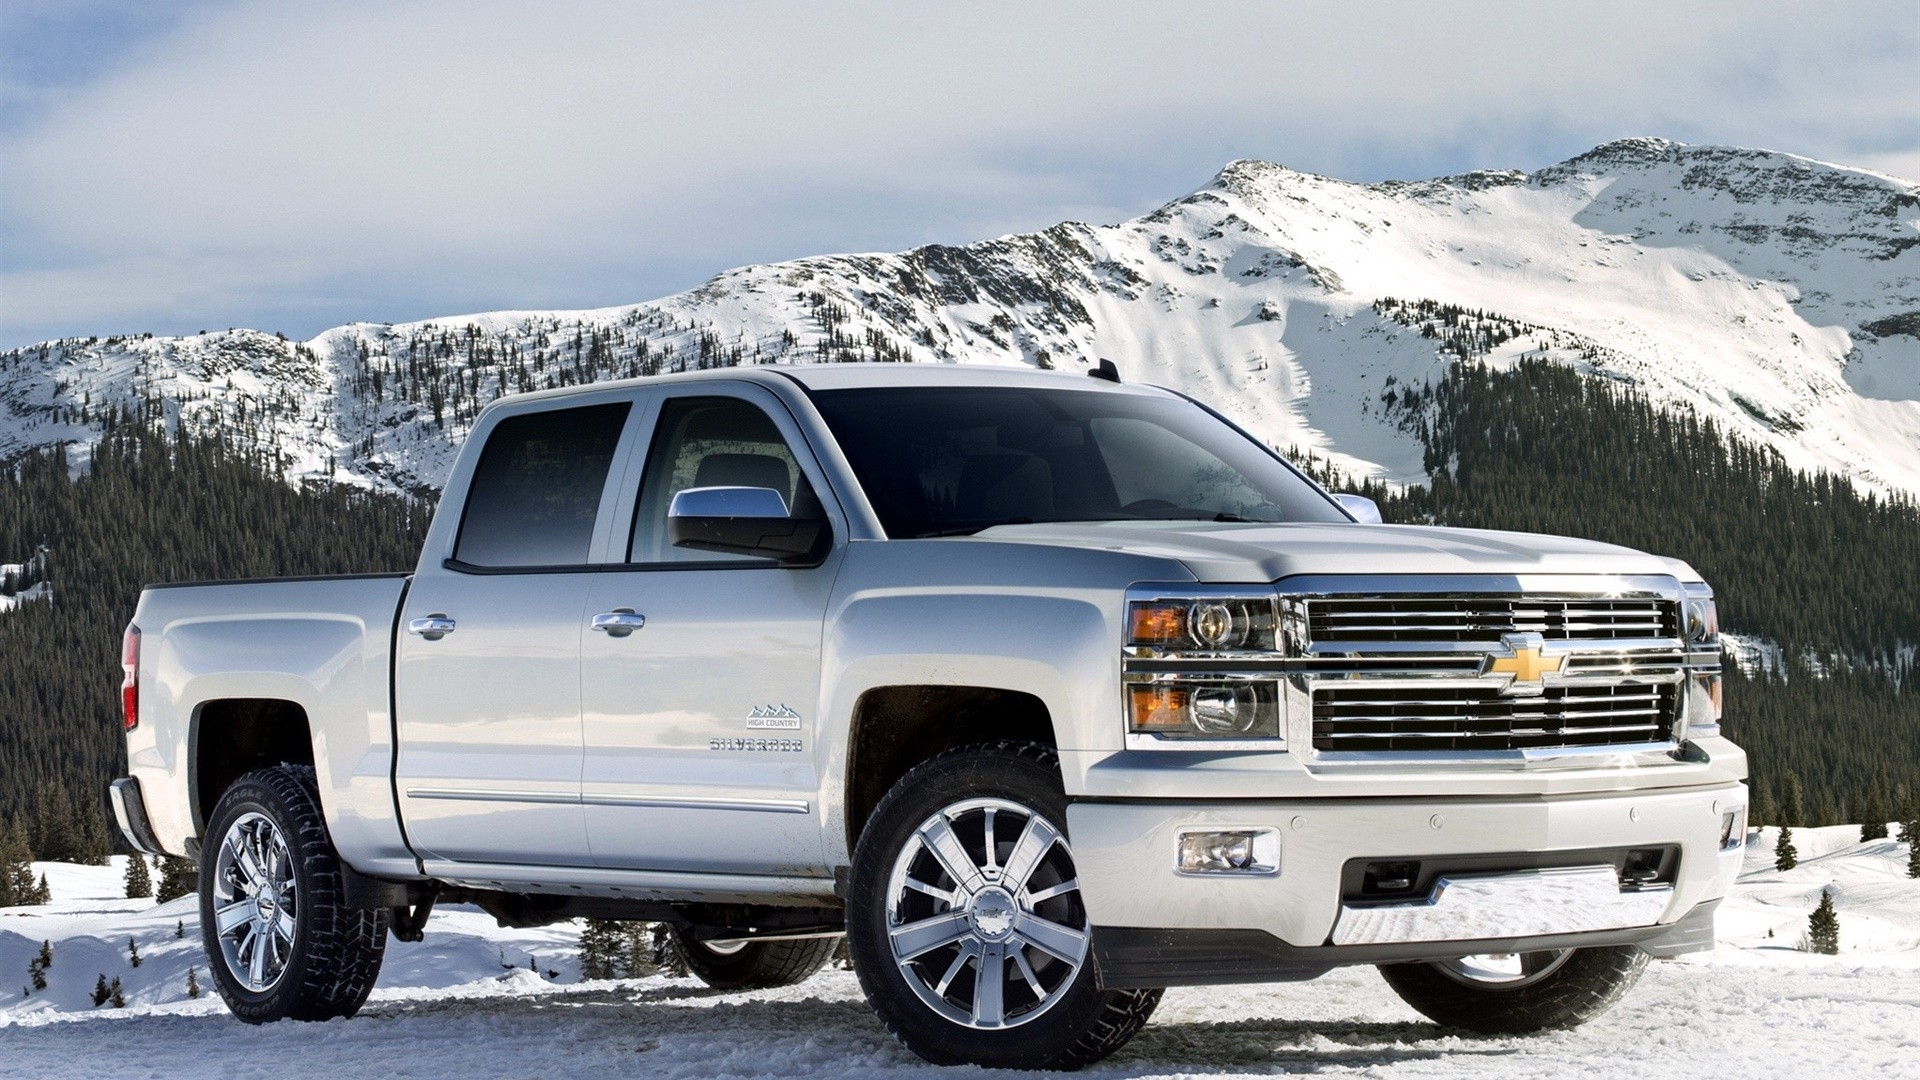 Silverado Wallpaper and Background